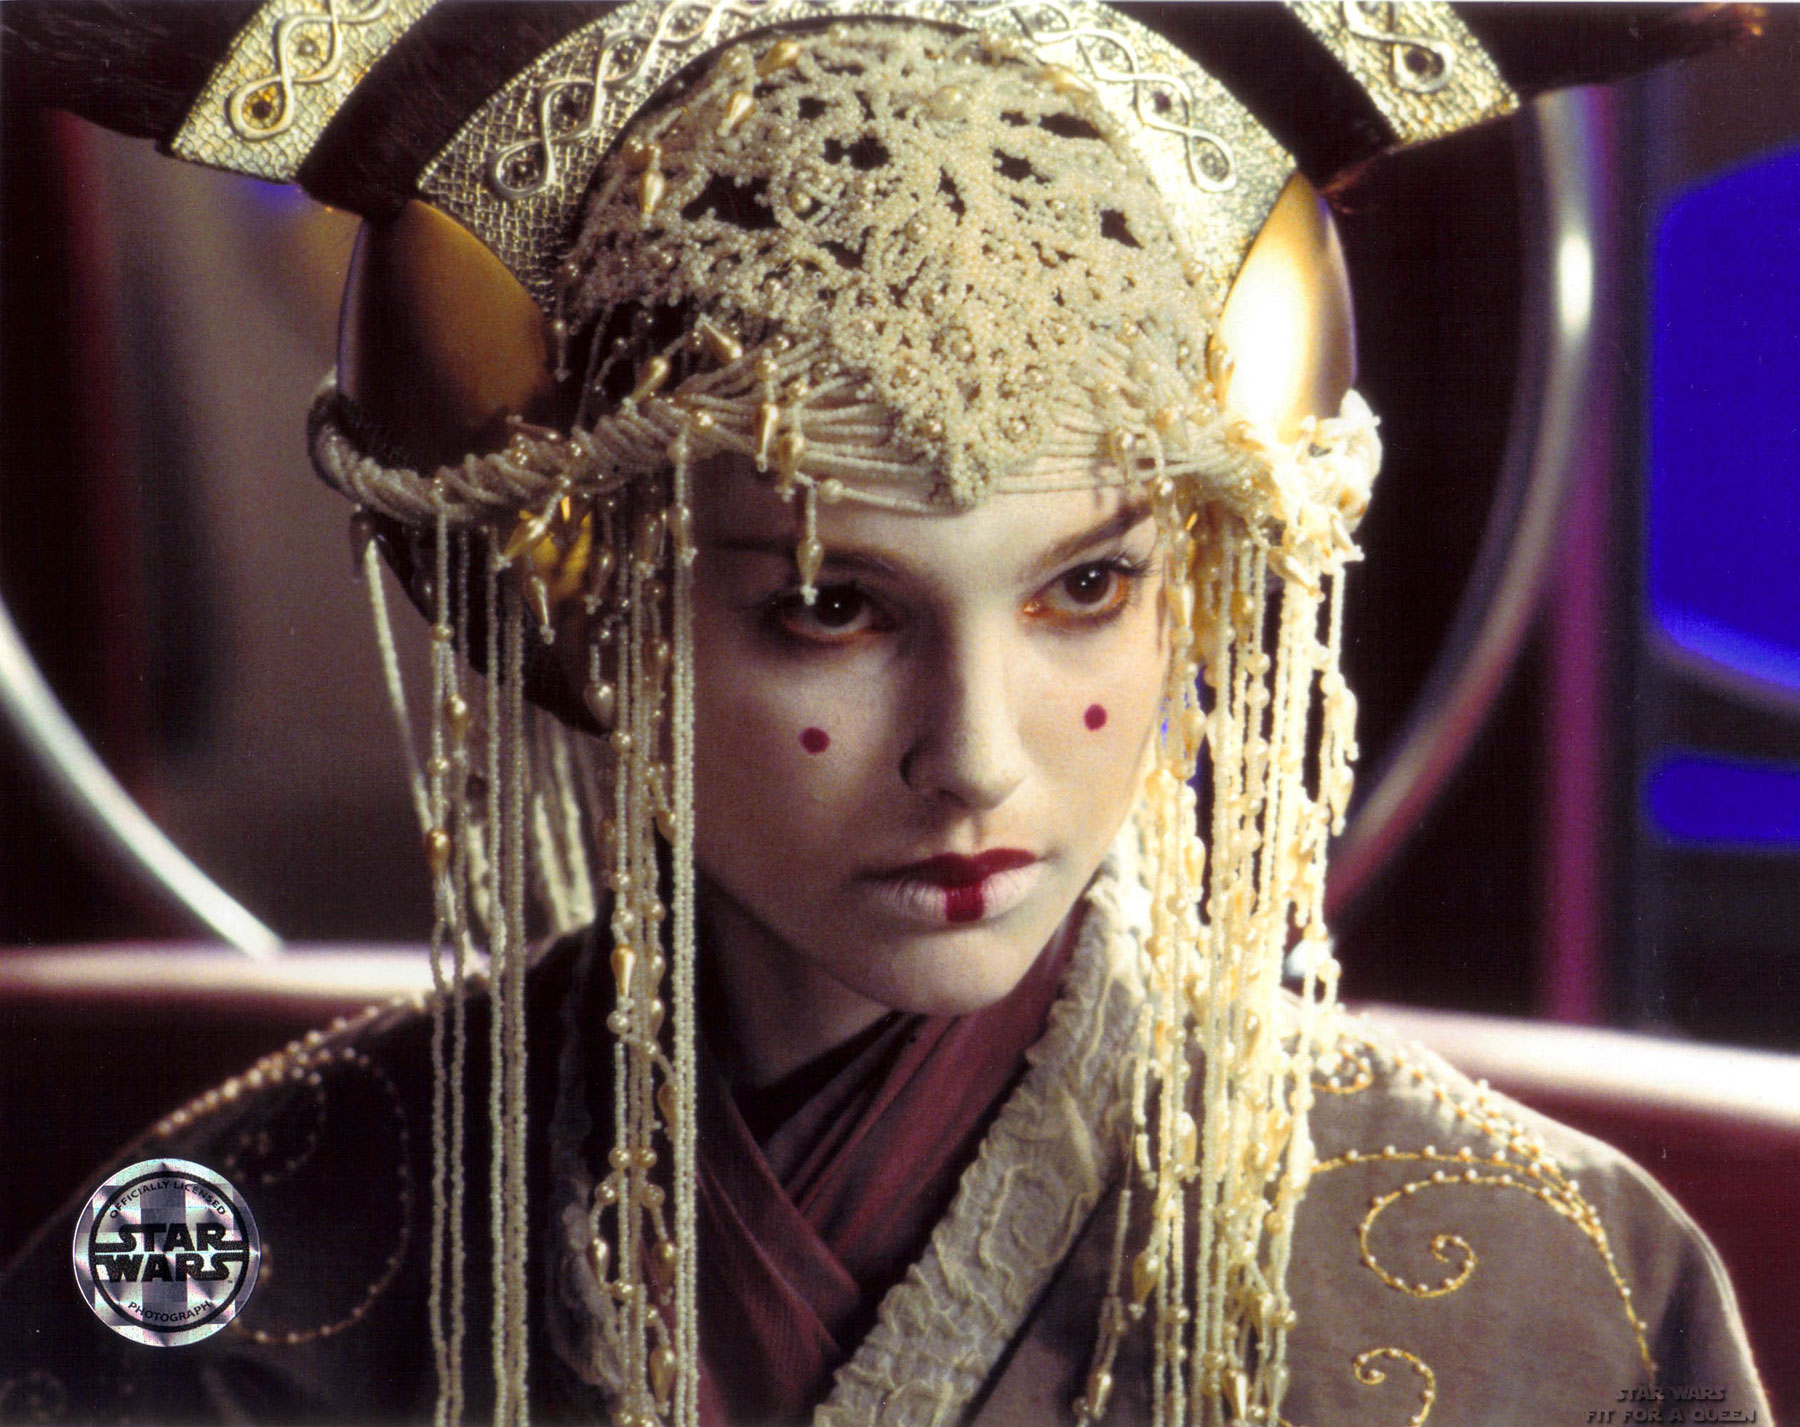 Queen amidala star wars nude xxx picture